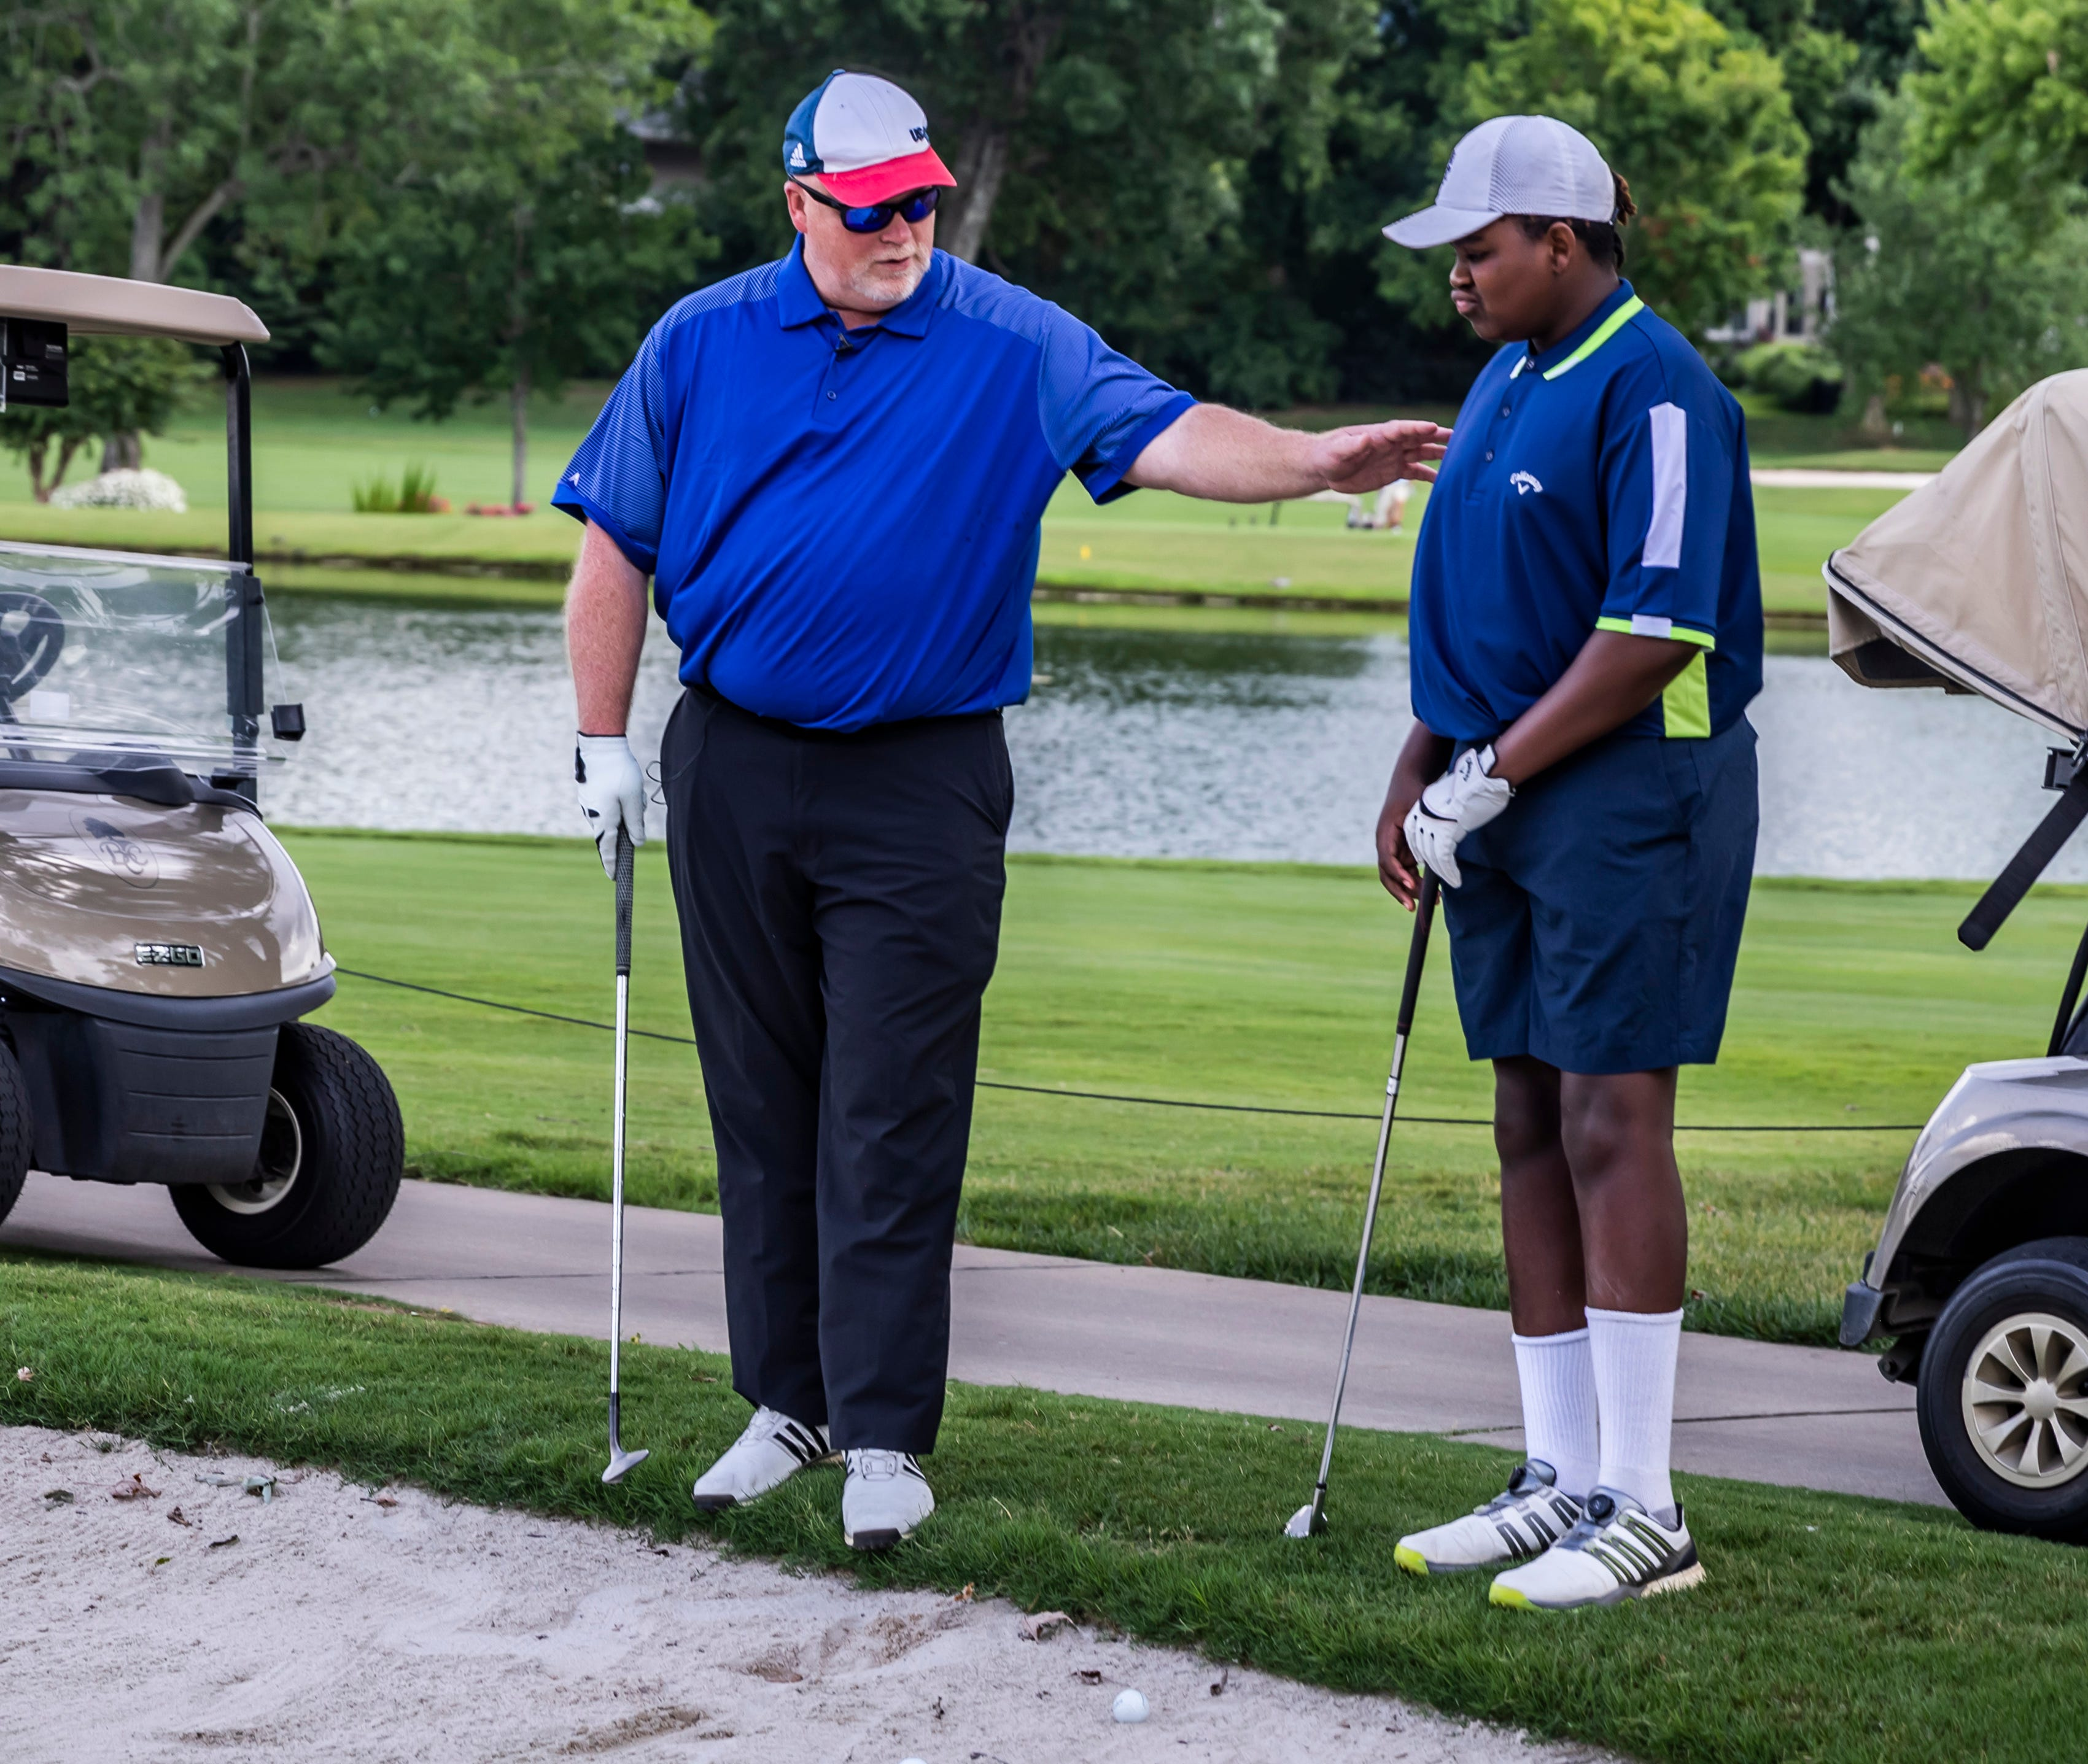 Three-time national champion blind golfer Chad NeSmith teaches Malachi Johnson, who has lost the ability to see, to play the sport Saturday, July 10, 2021 at the Brentwood Country Club.